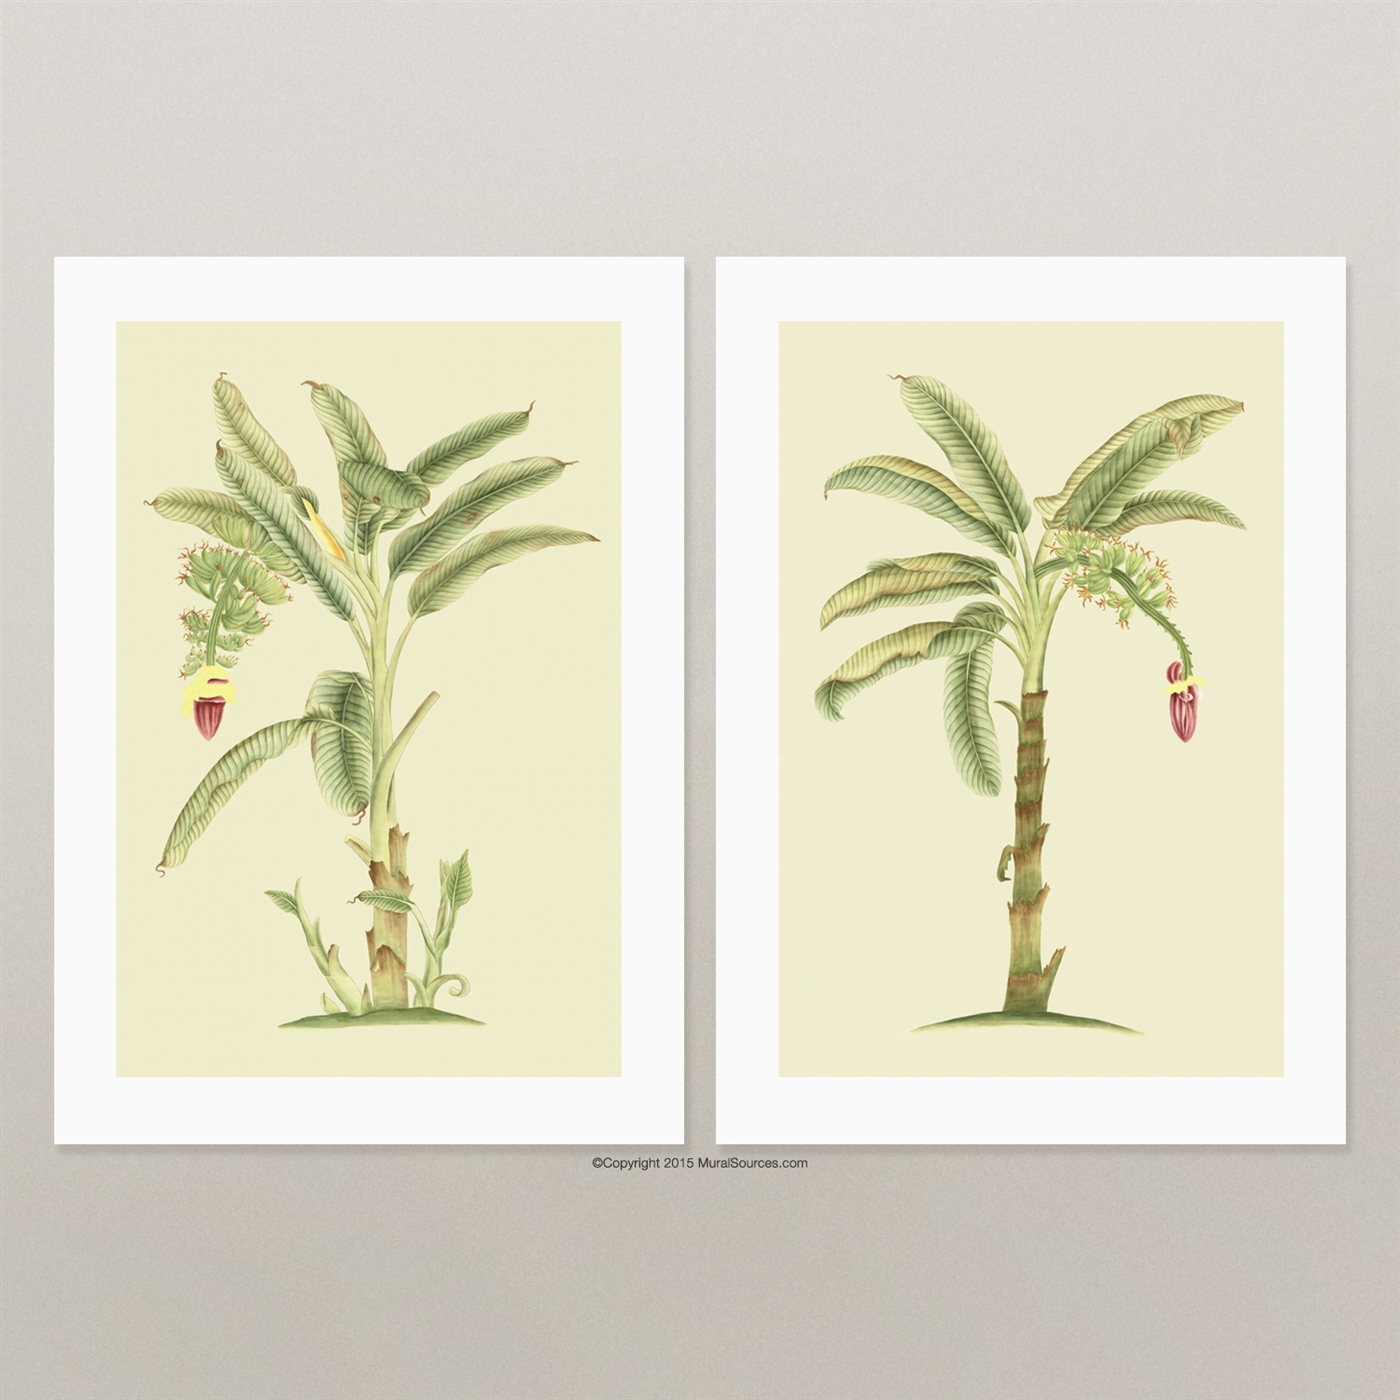 banana tree prints for framing